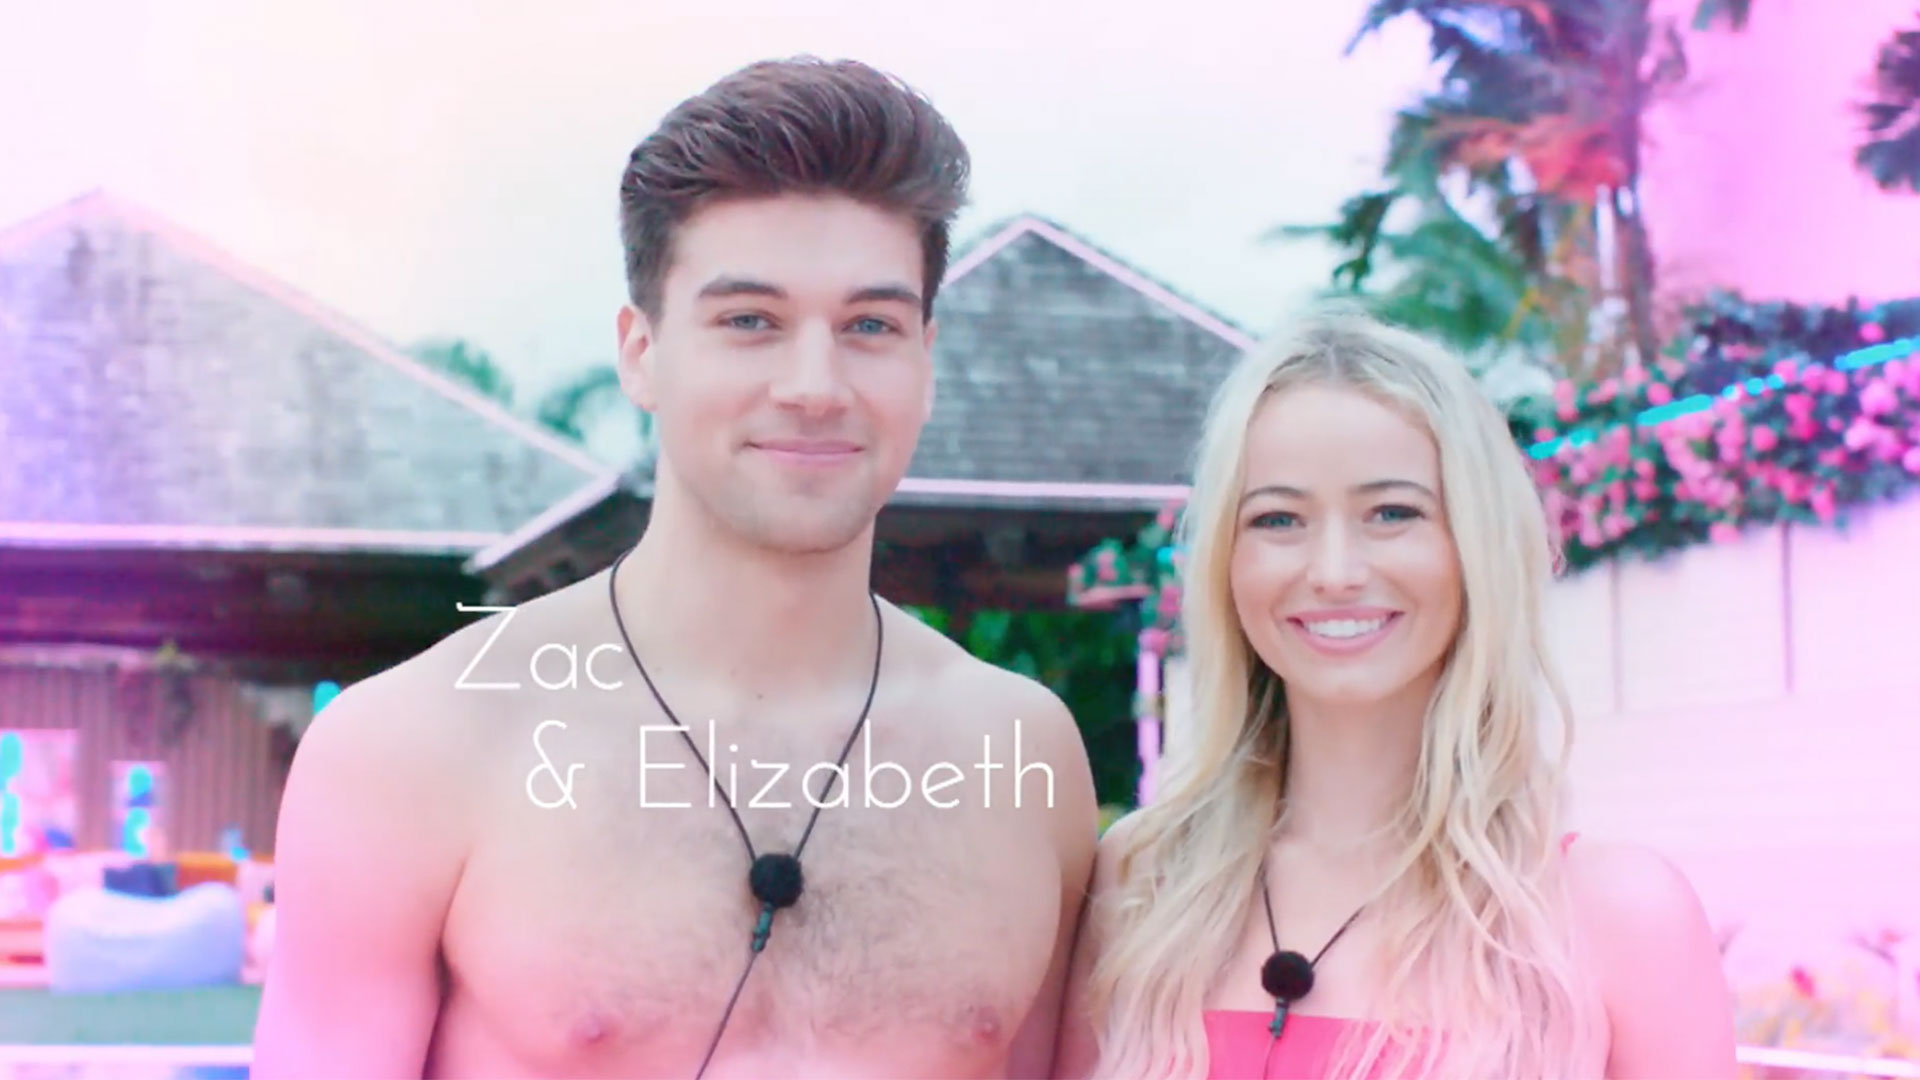 Zac and Elizabeth